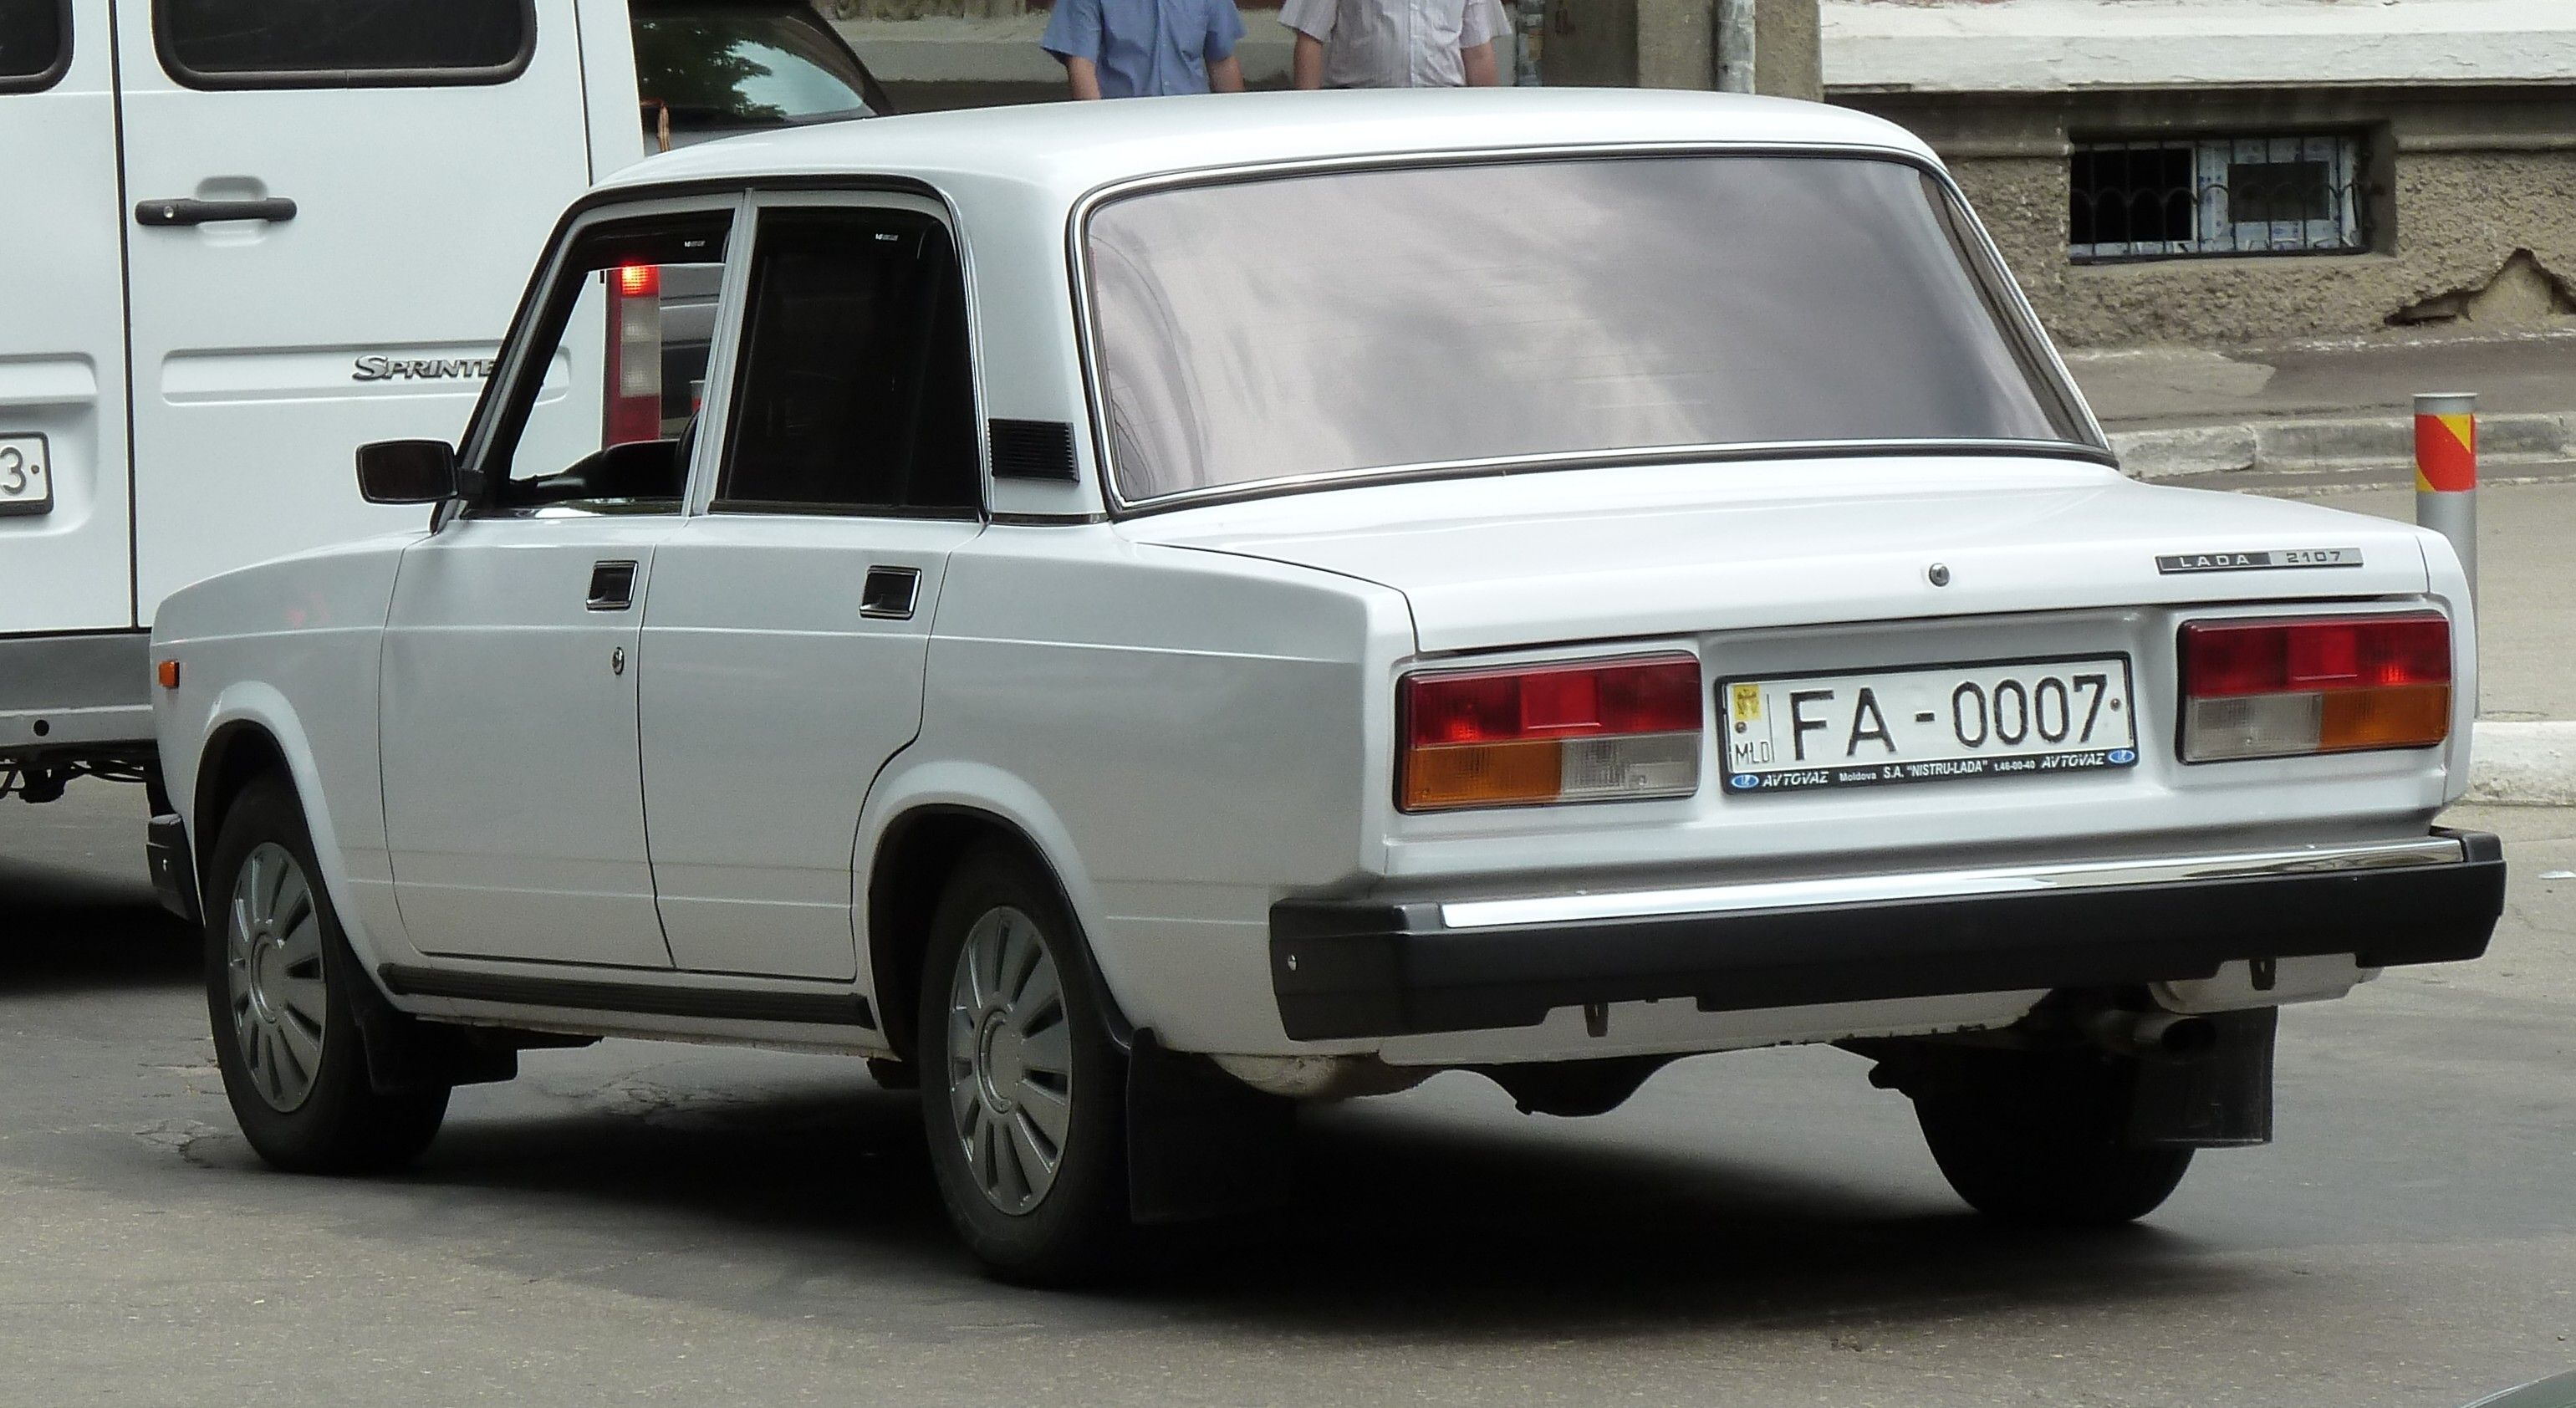 File:Lada 2107 with military plate from Moldova.JPG